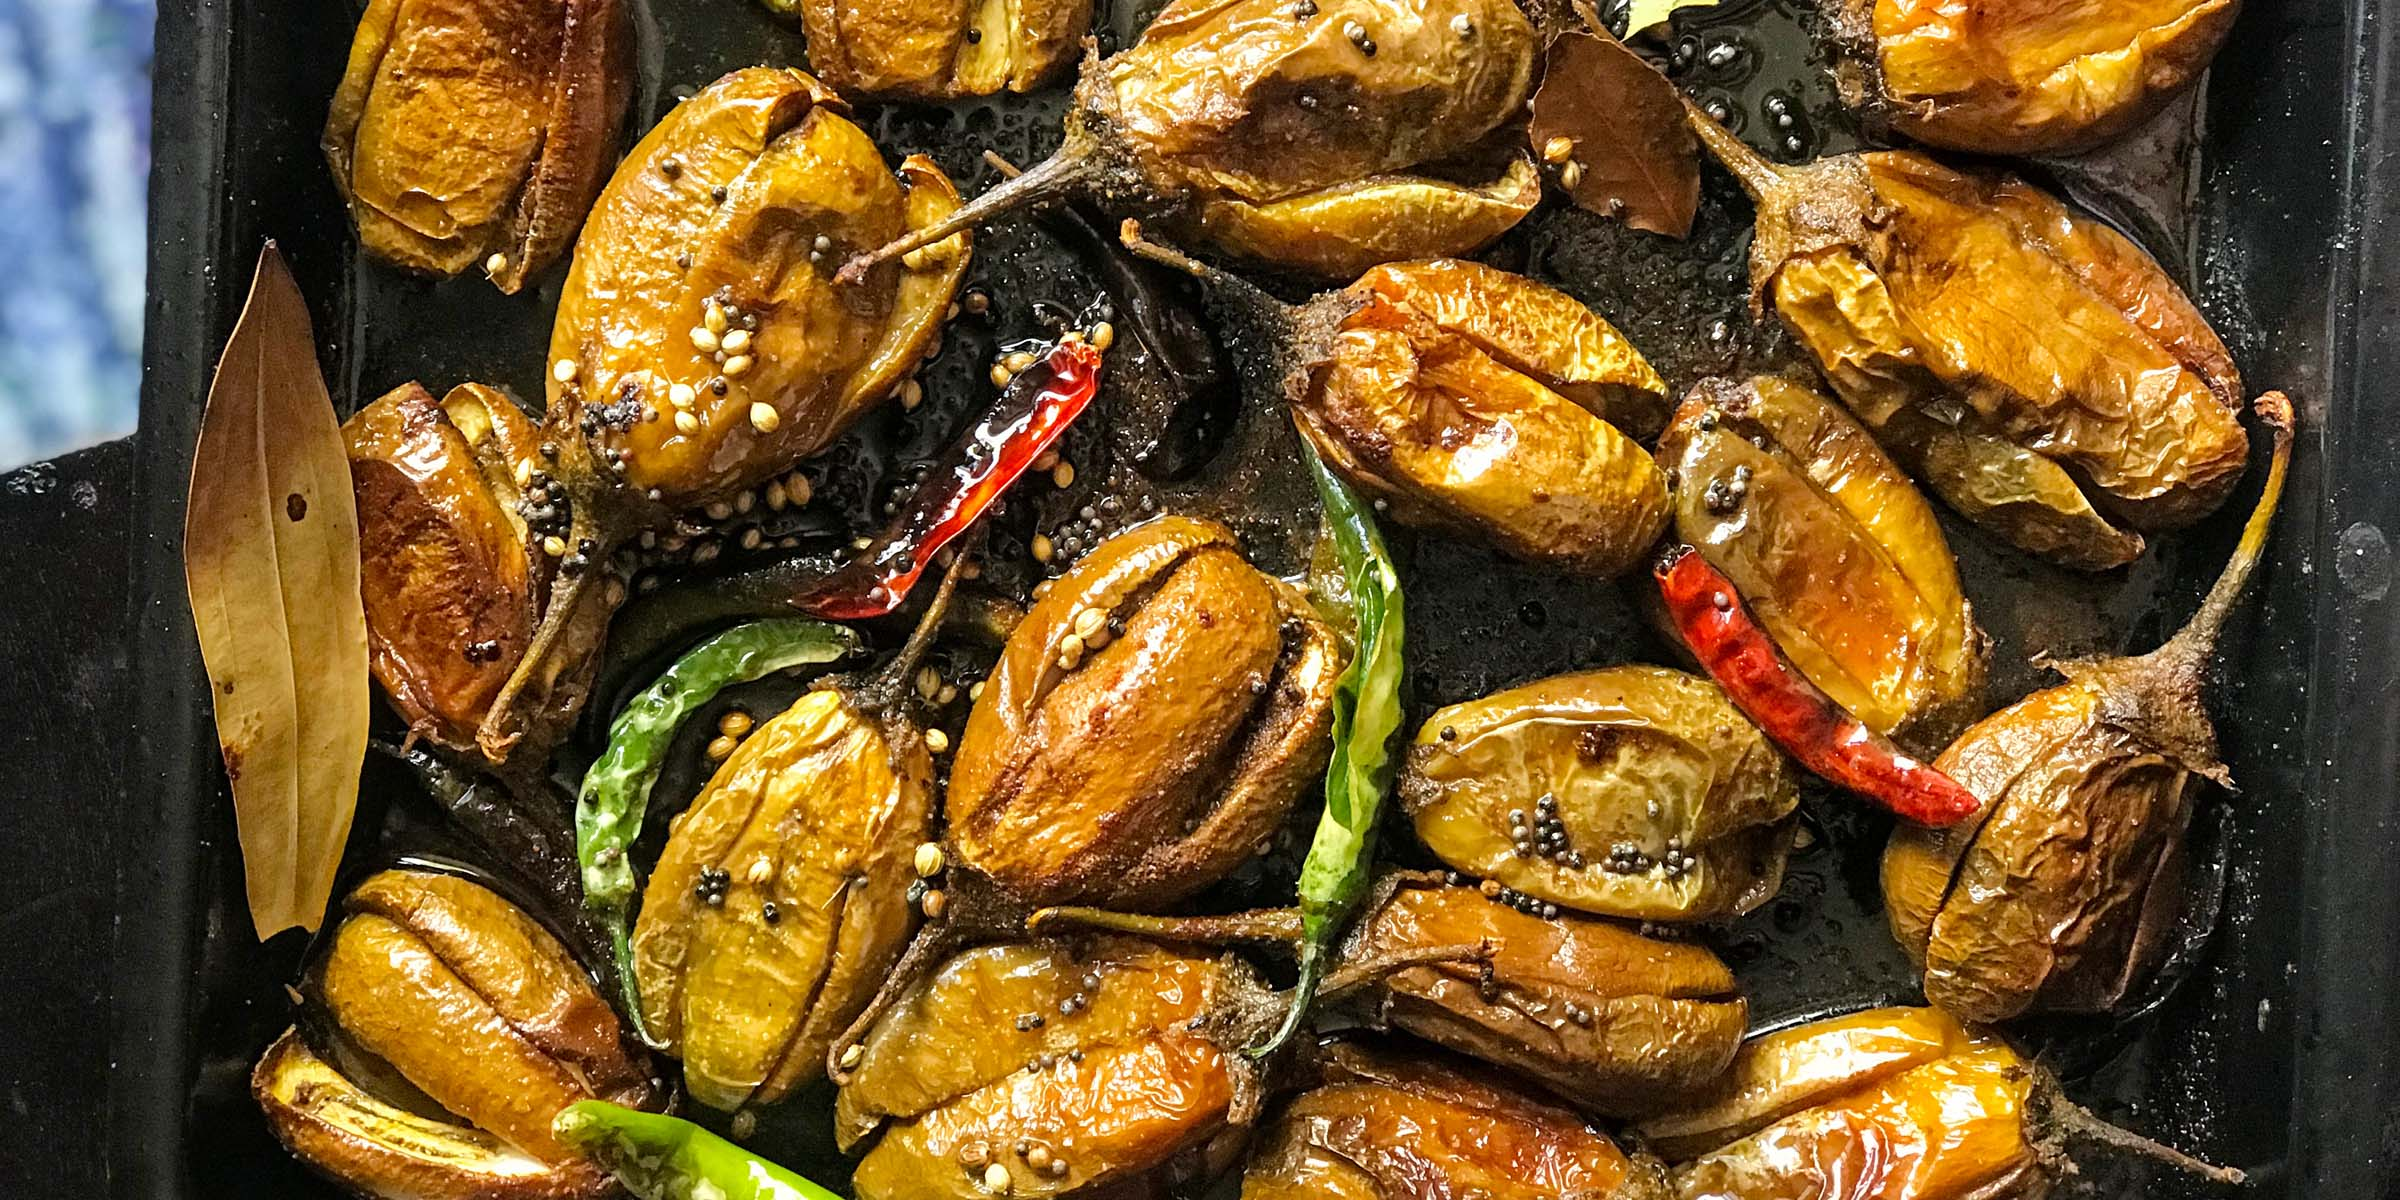 Grilled eggplant in tempered spices